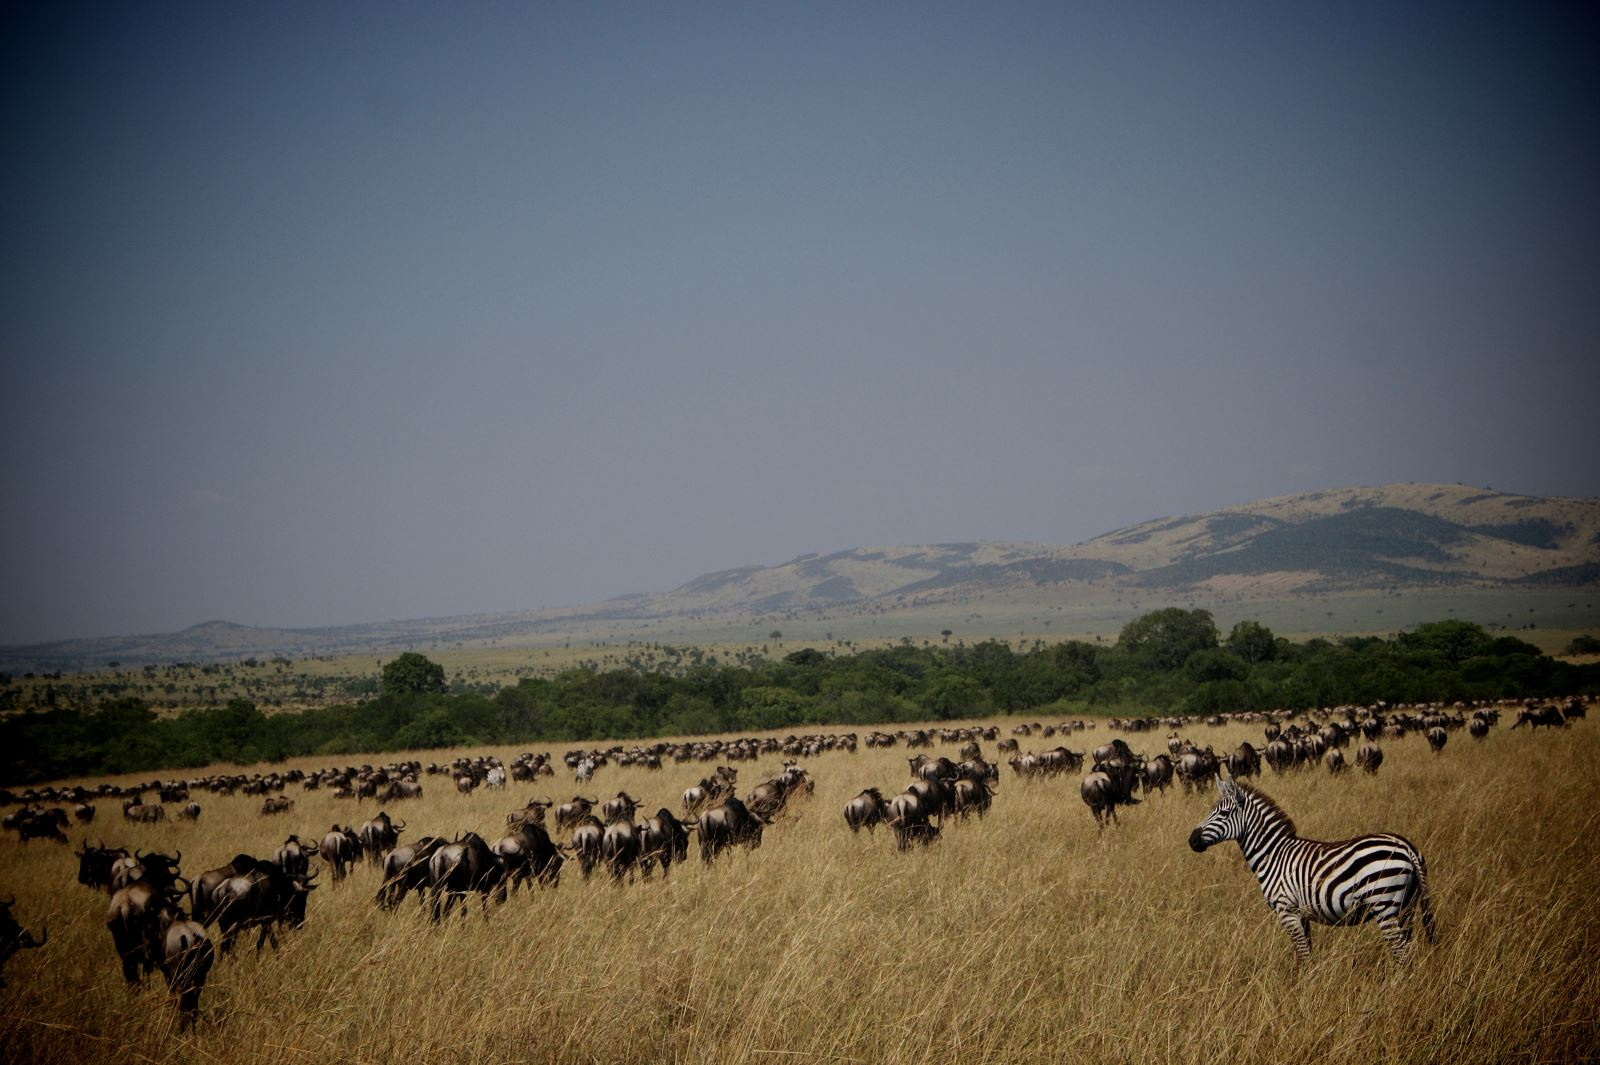 Safari to the Wildebeest Migration in Masai Mara, Kenya